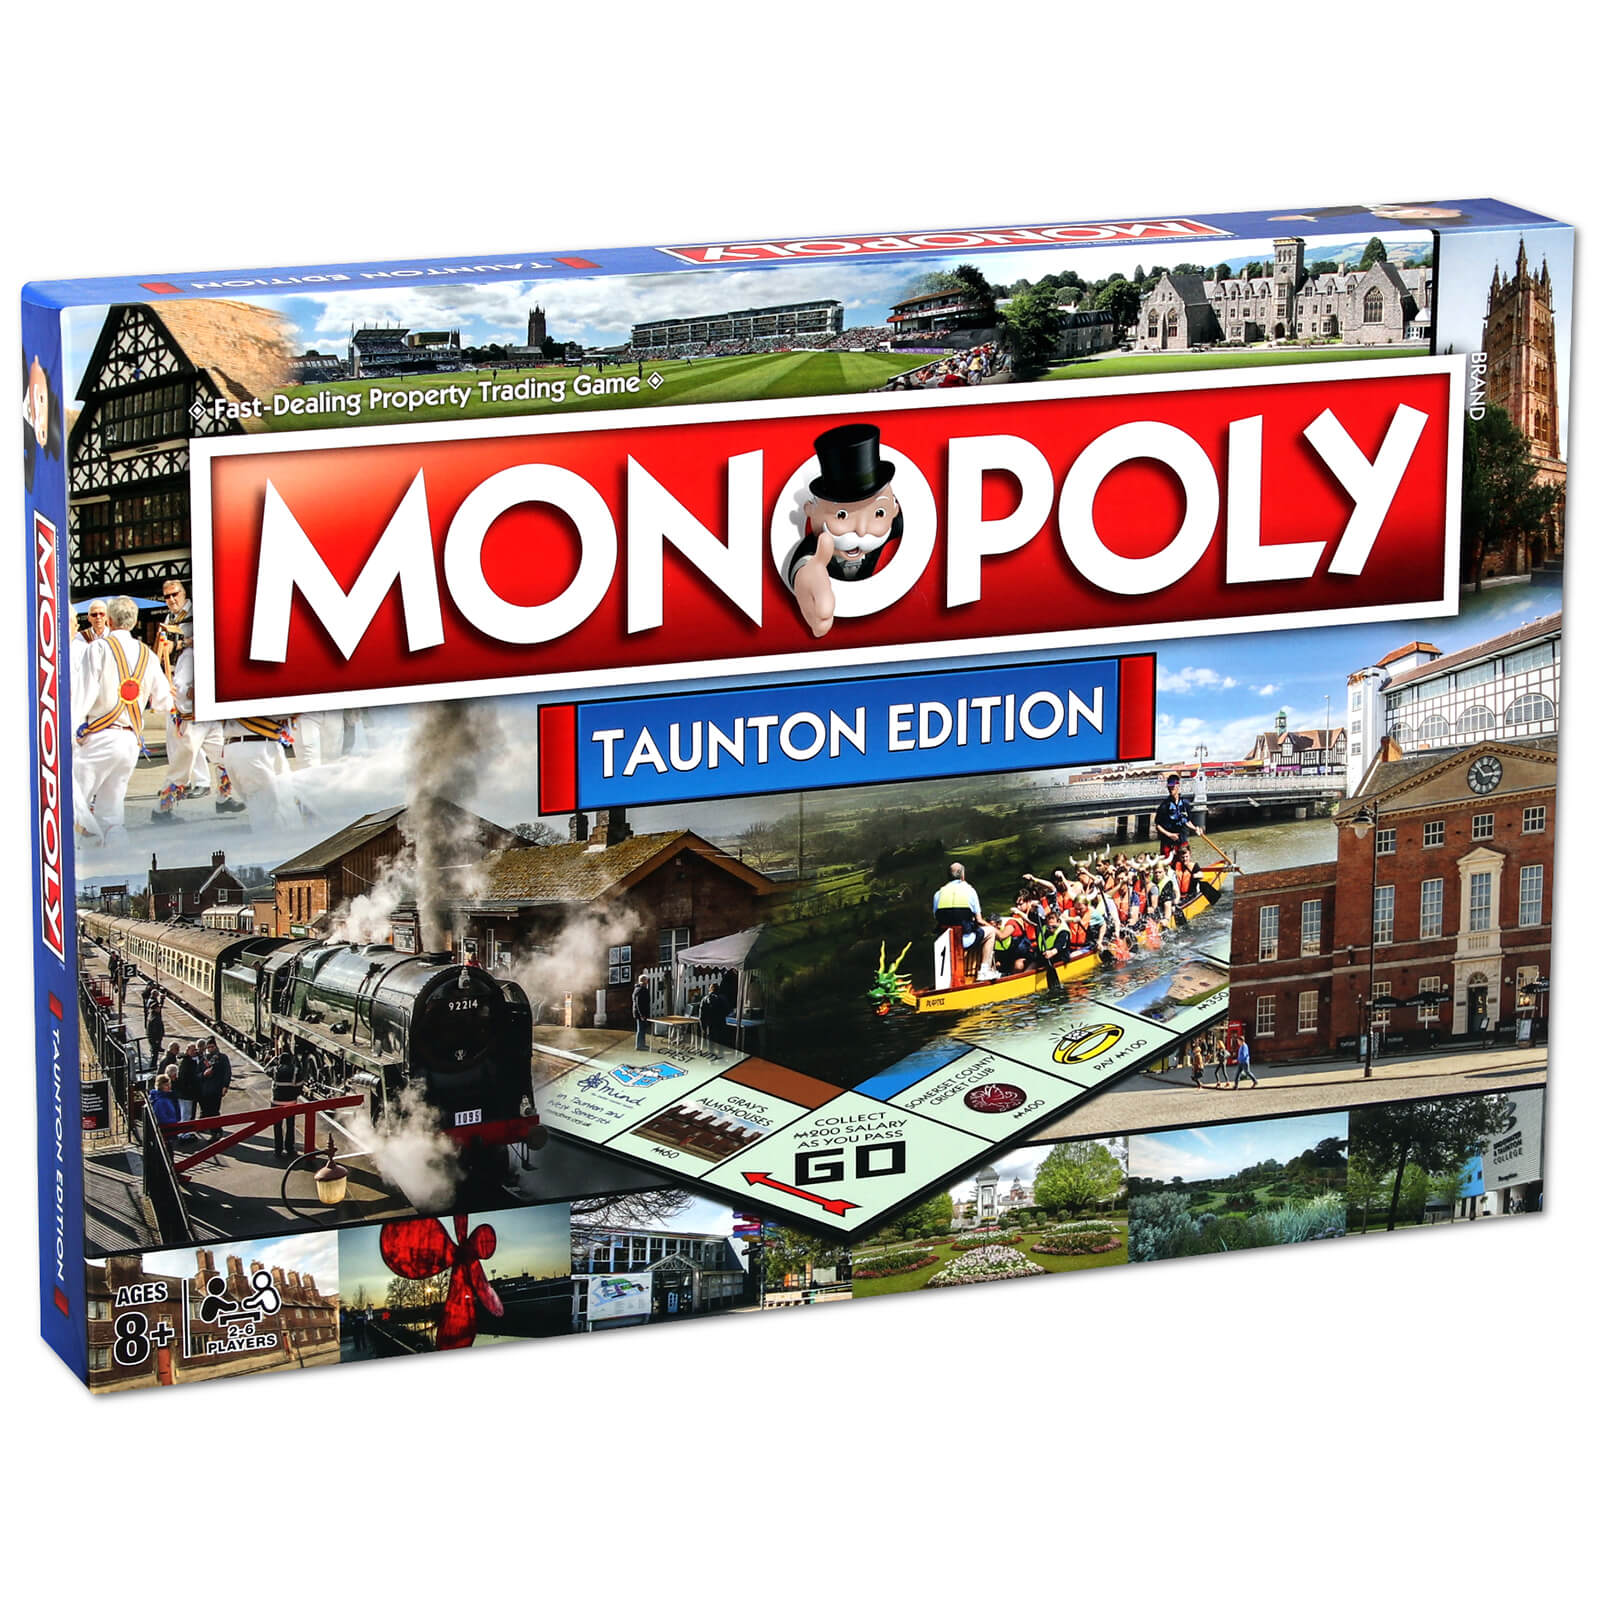 Image of Monopoly Board Game - Taunton Edition